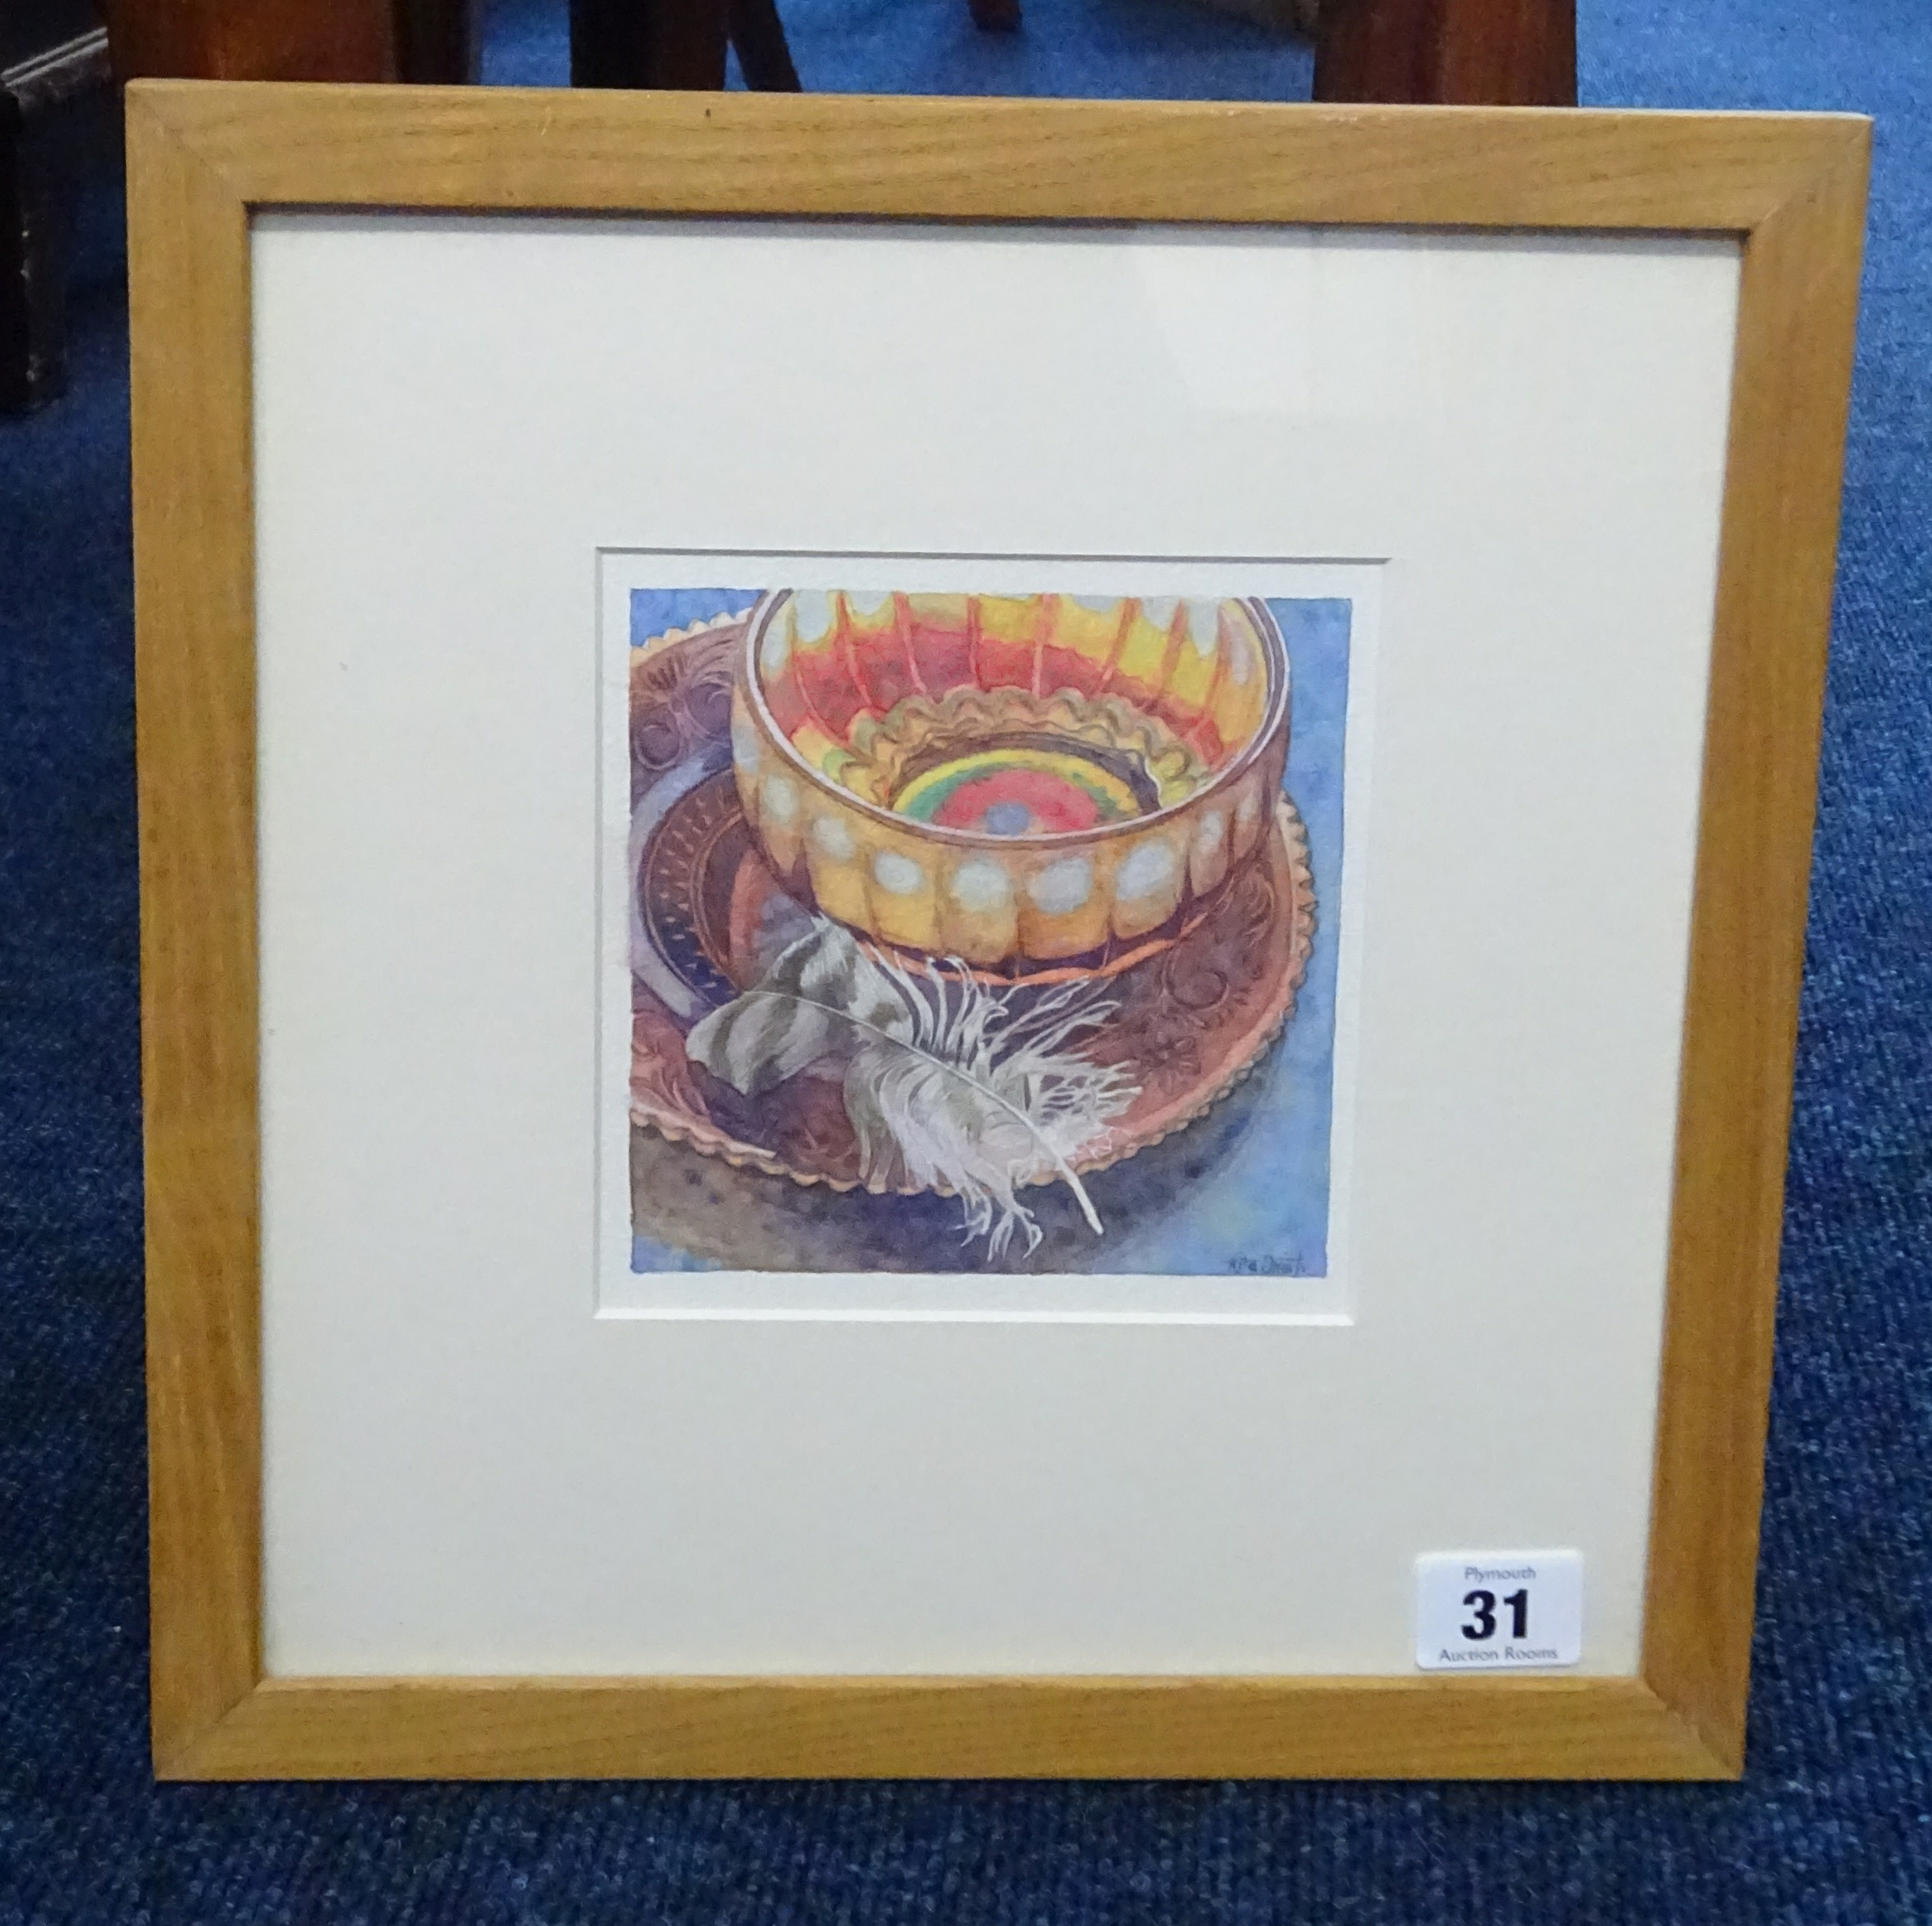 Lot 031 - Rita Smith, two watercolours, 'Amber plate and carnival glass bowl' and 'Amber carnival glass bowl',